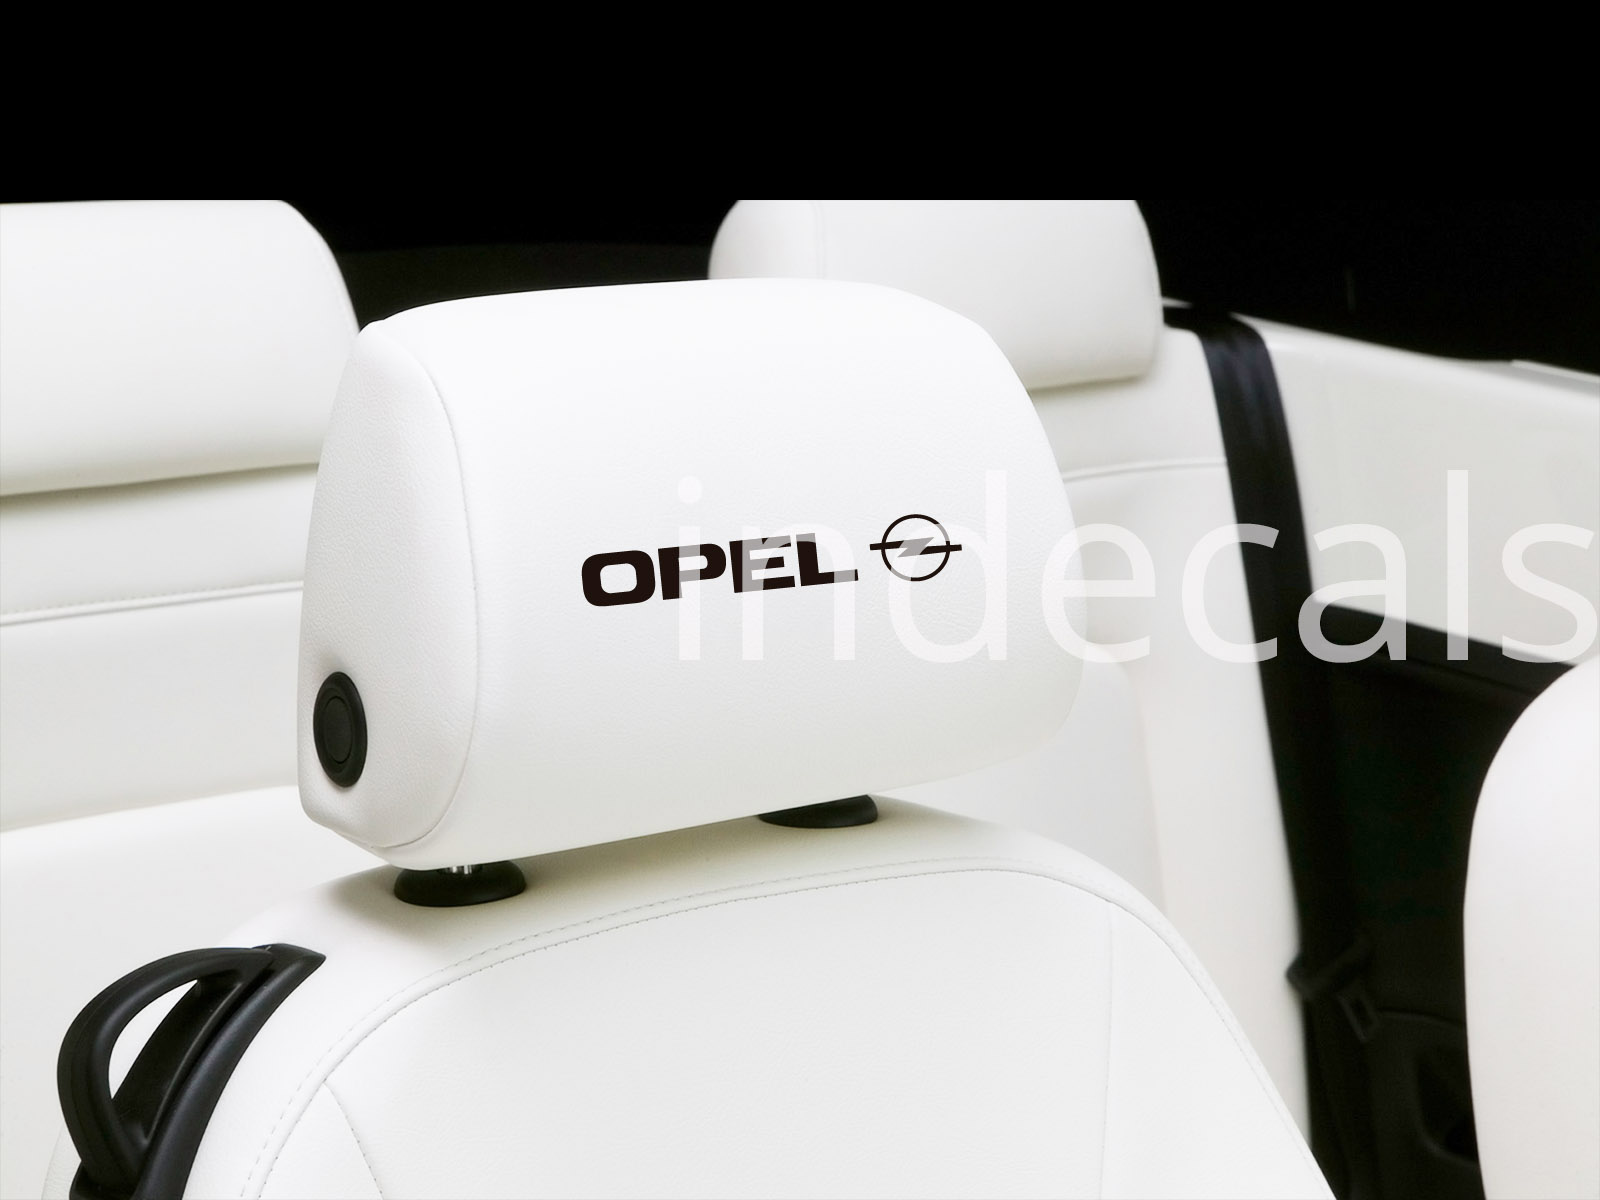 6 x Opel Stickers for Headrests - Black